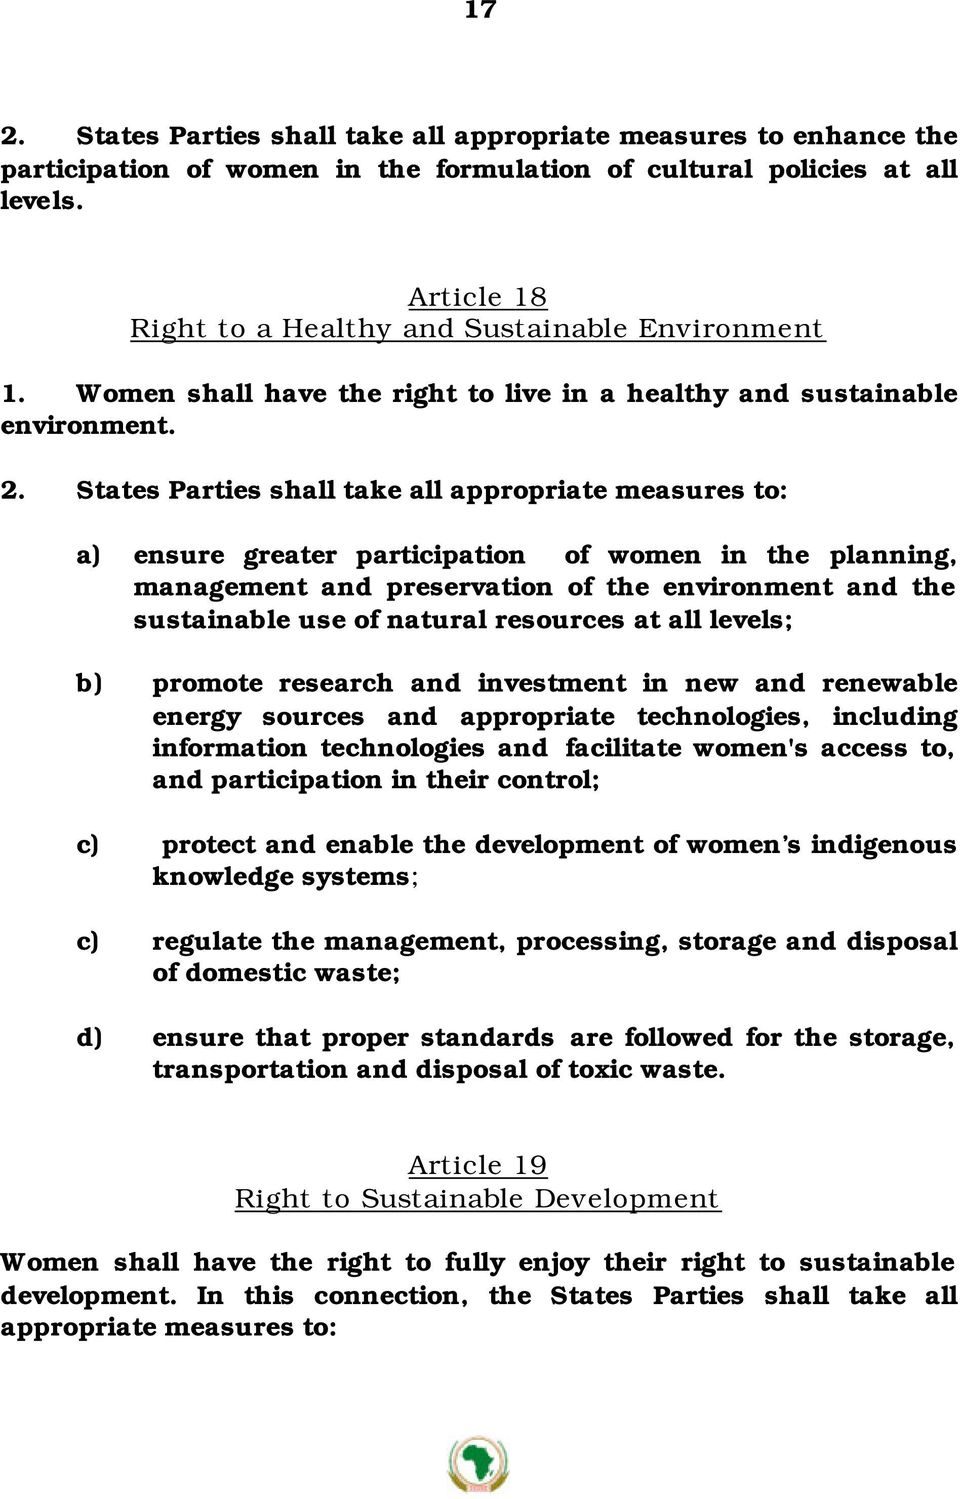 States Parties shall take all appropriate measures to: a) ensure greater participation of women in the planning, management and preservation of the environment and the sustainable use of natural